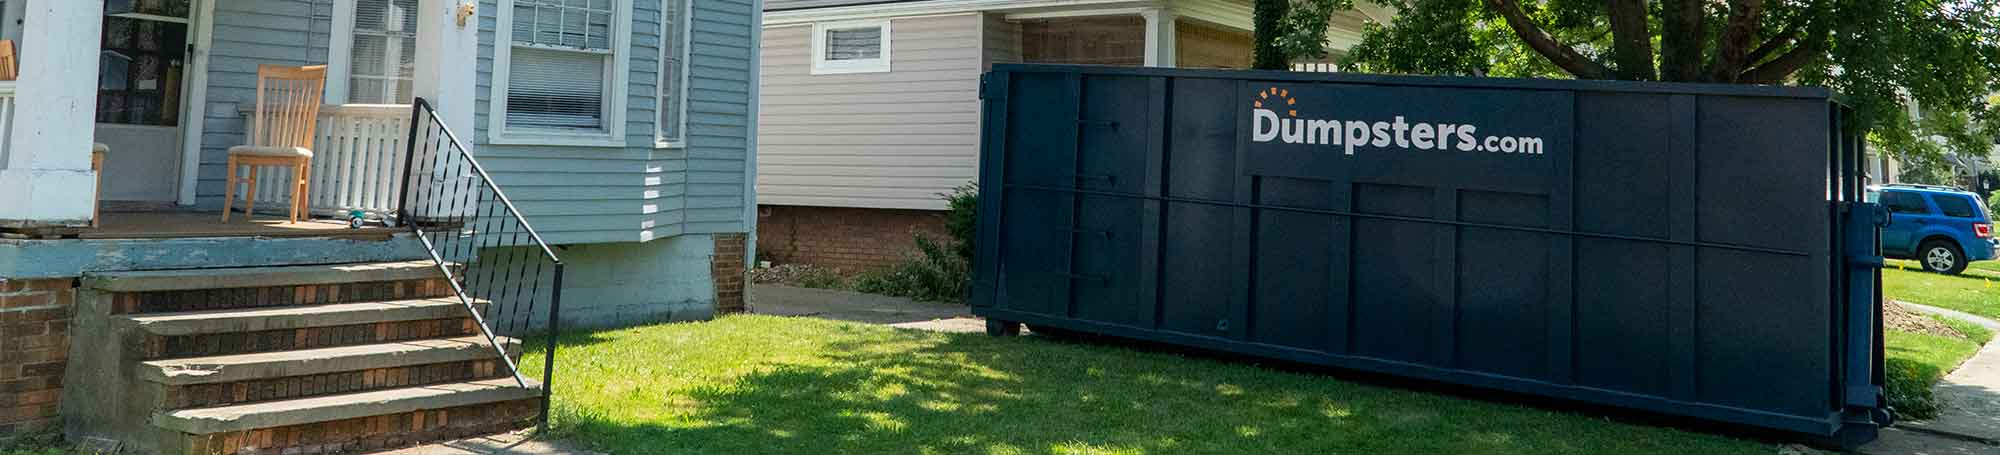 A Roll Off Dumpster in a Residential Driveway Near a Blue House.